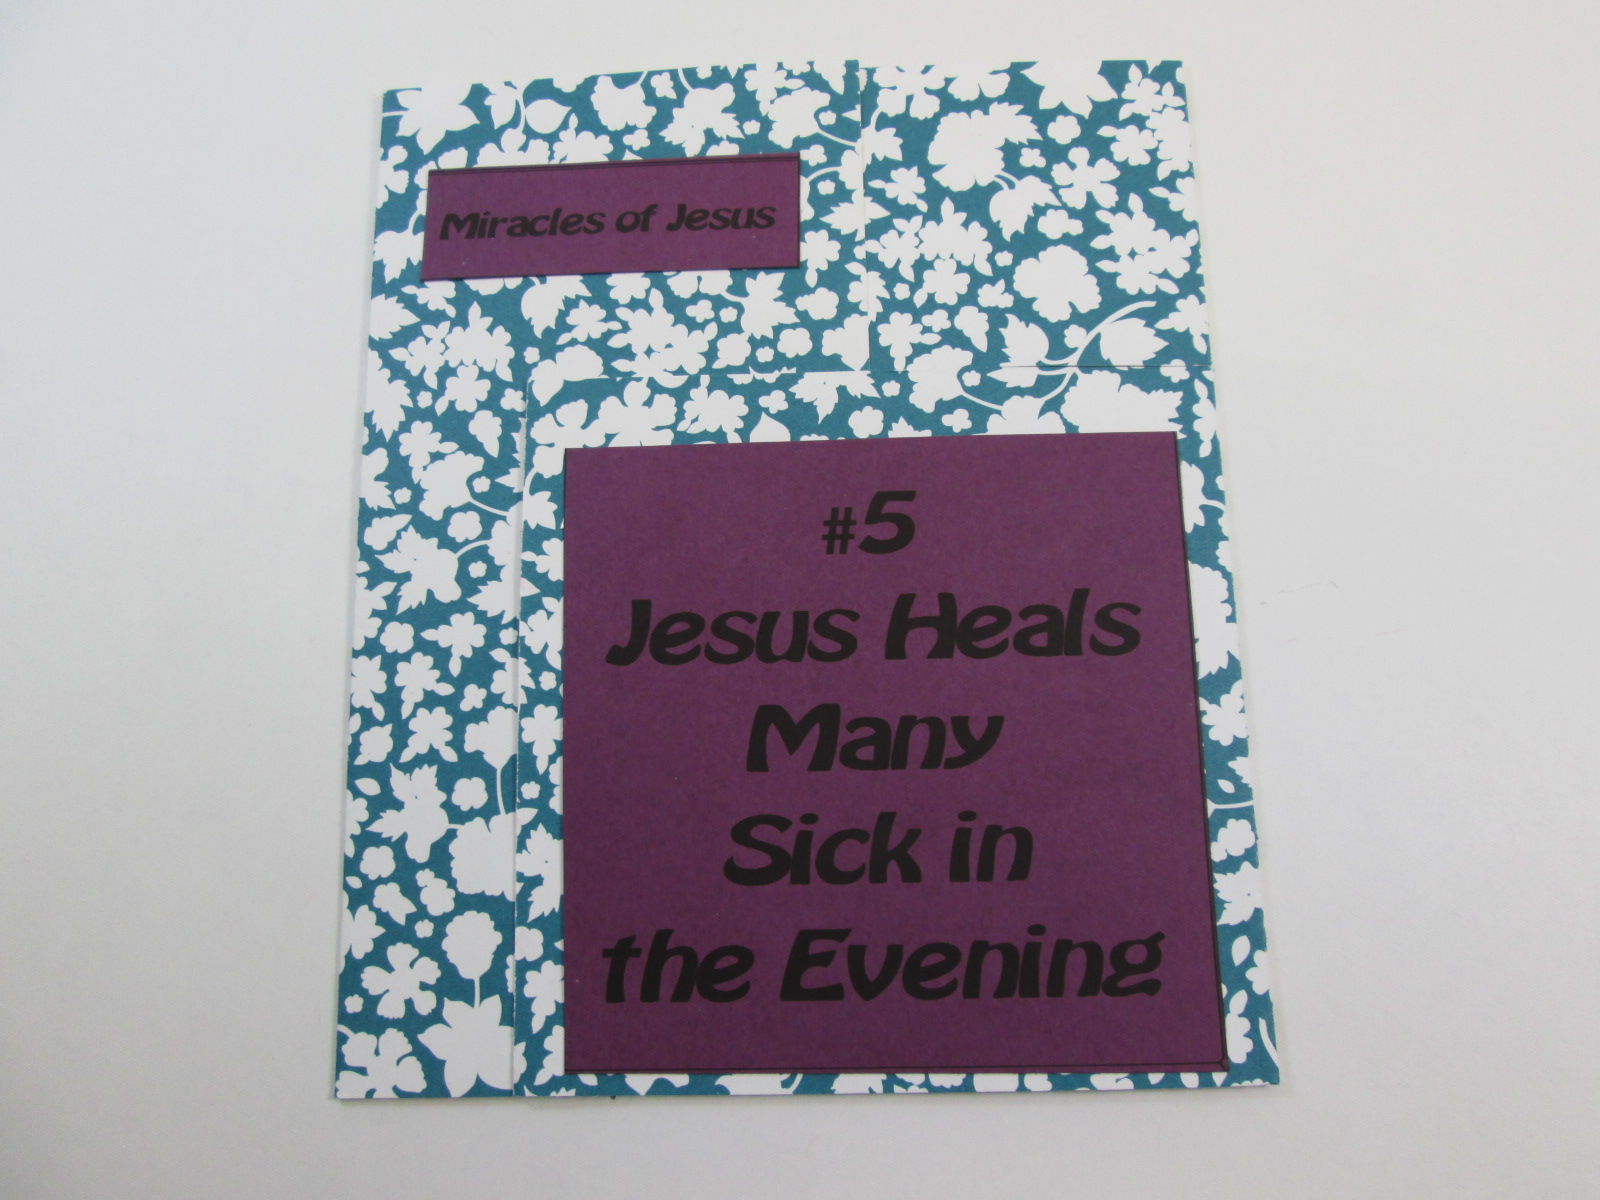 #5 Jesus Heals Many Sick In The Evening